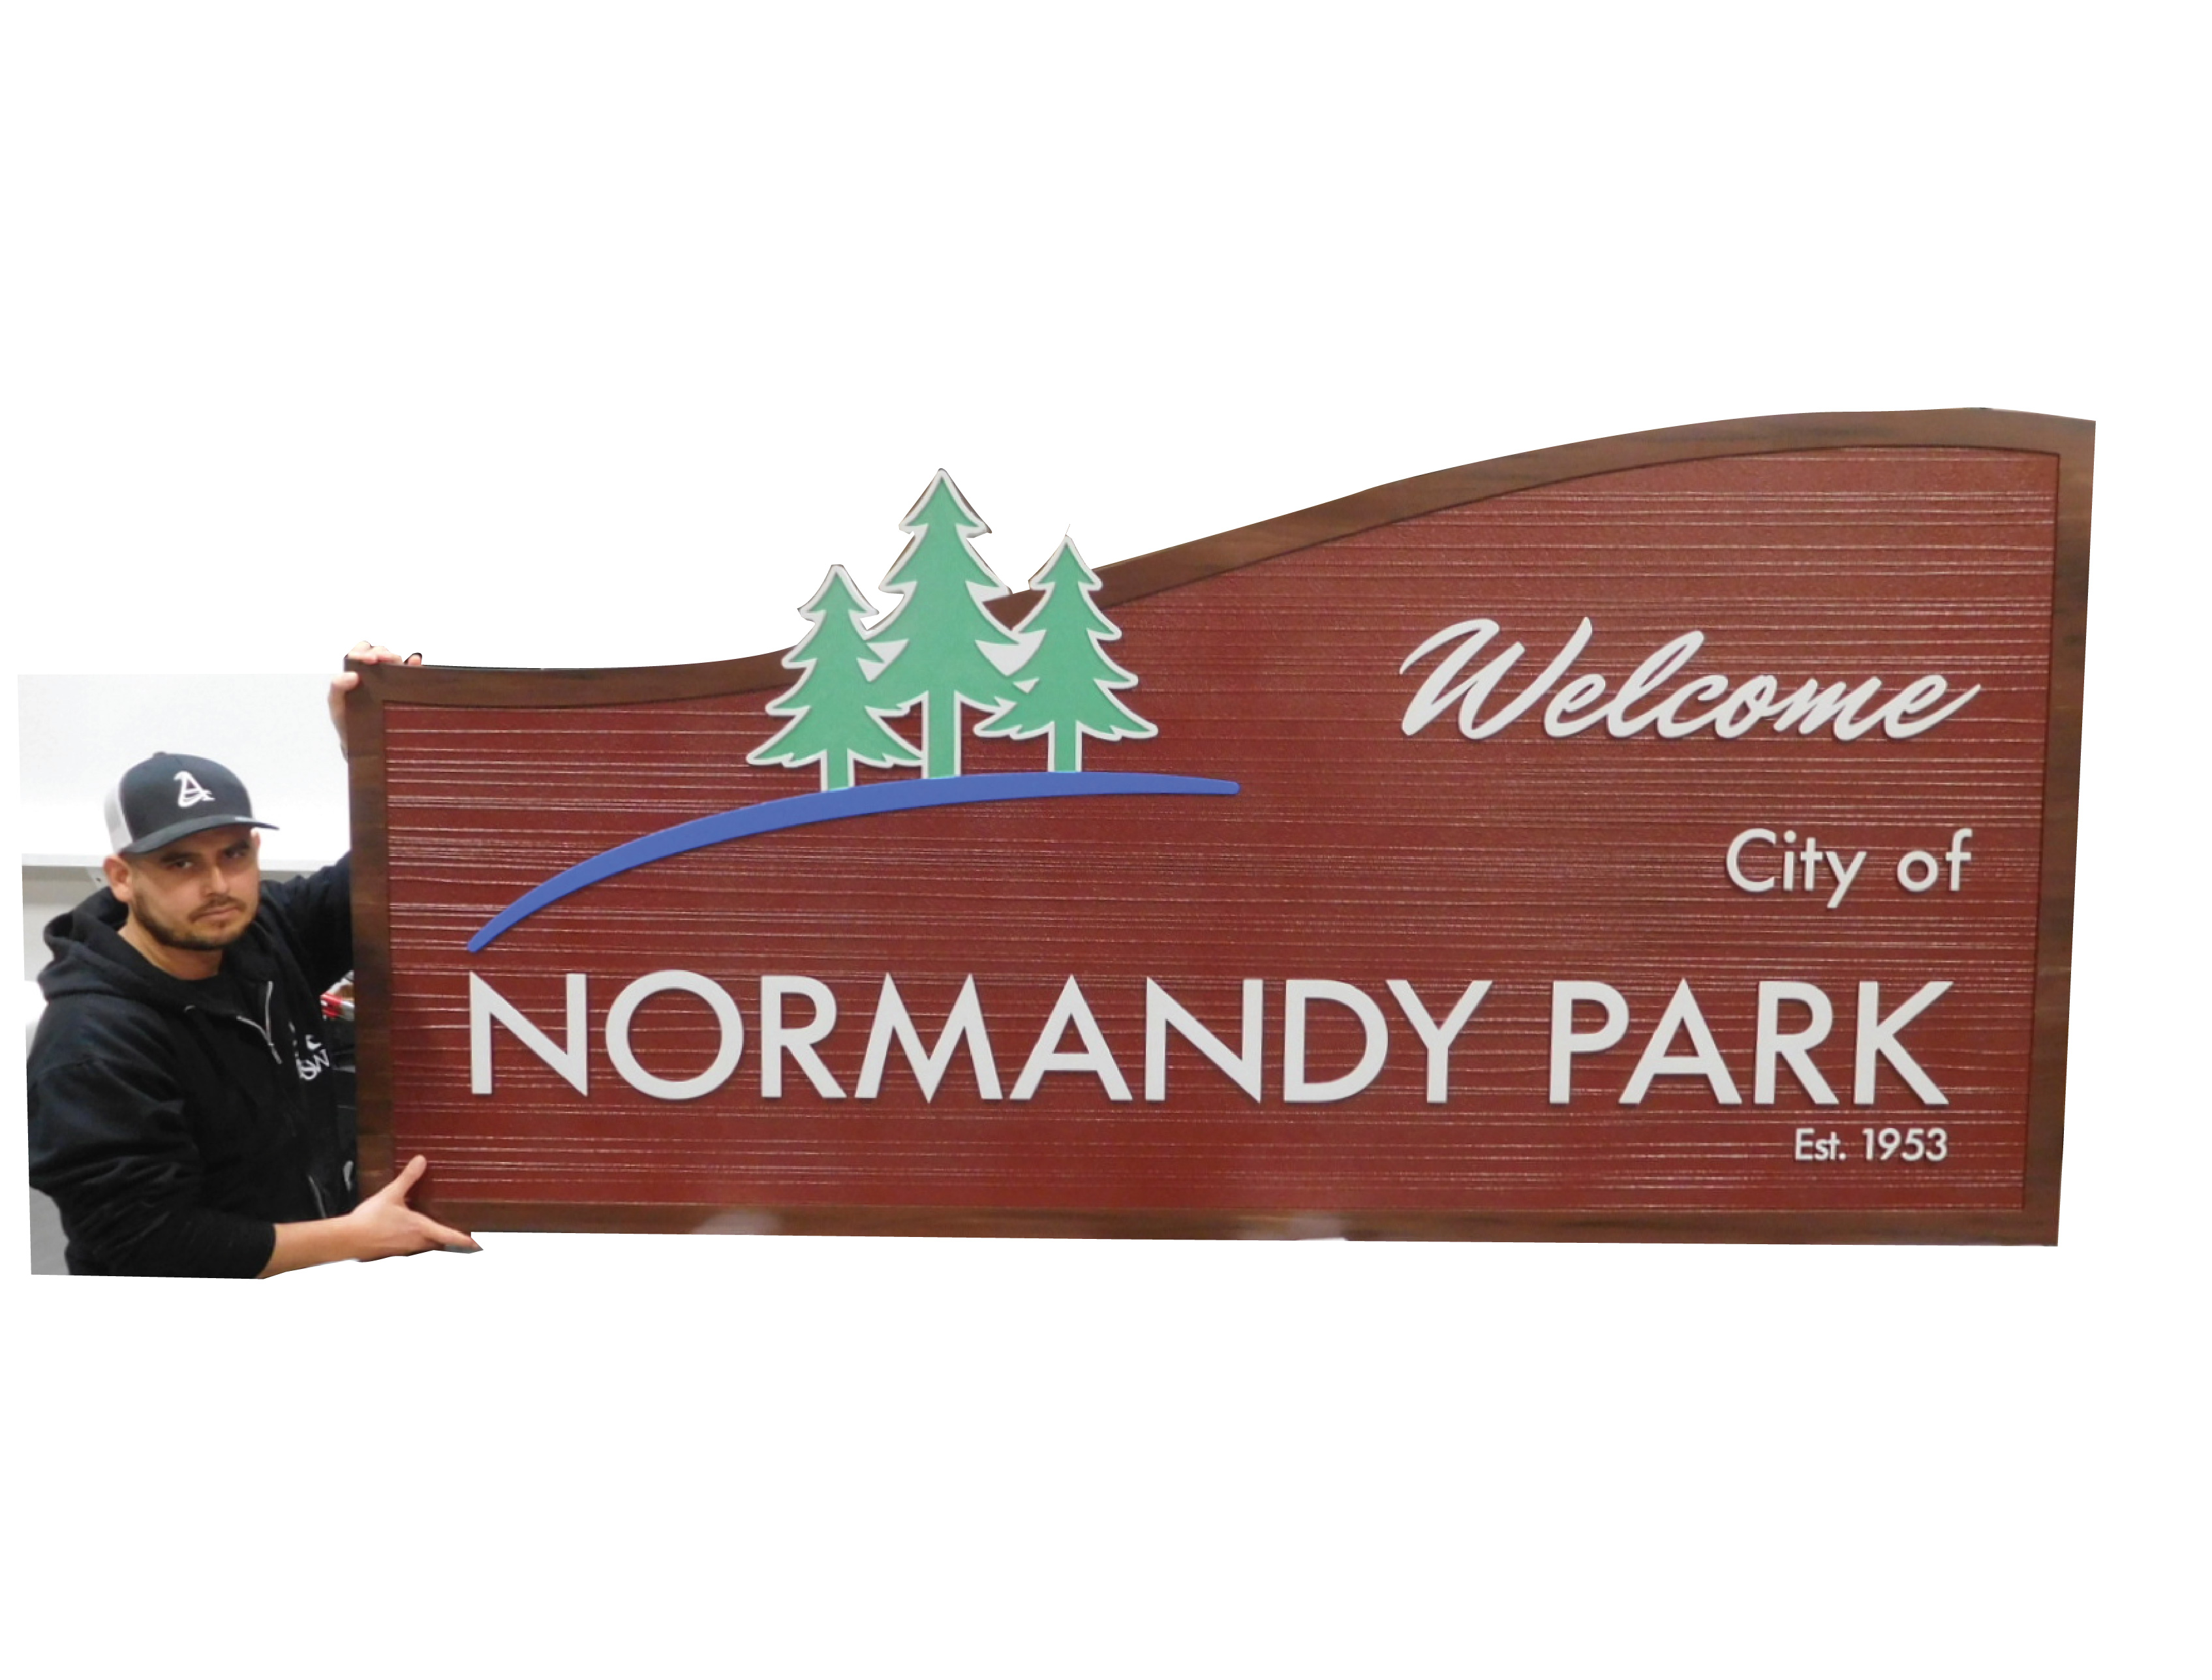 F15340 - Carved and Sandblasted Wood Grain  Entrance and Welcome  Sign  for Normandy Park, 2.5-D with Pine Trees as Artwork